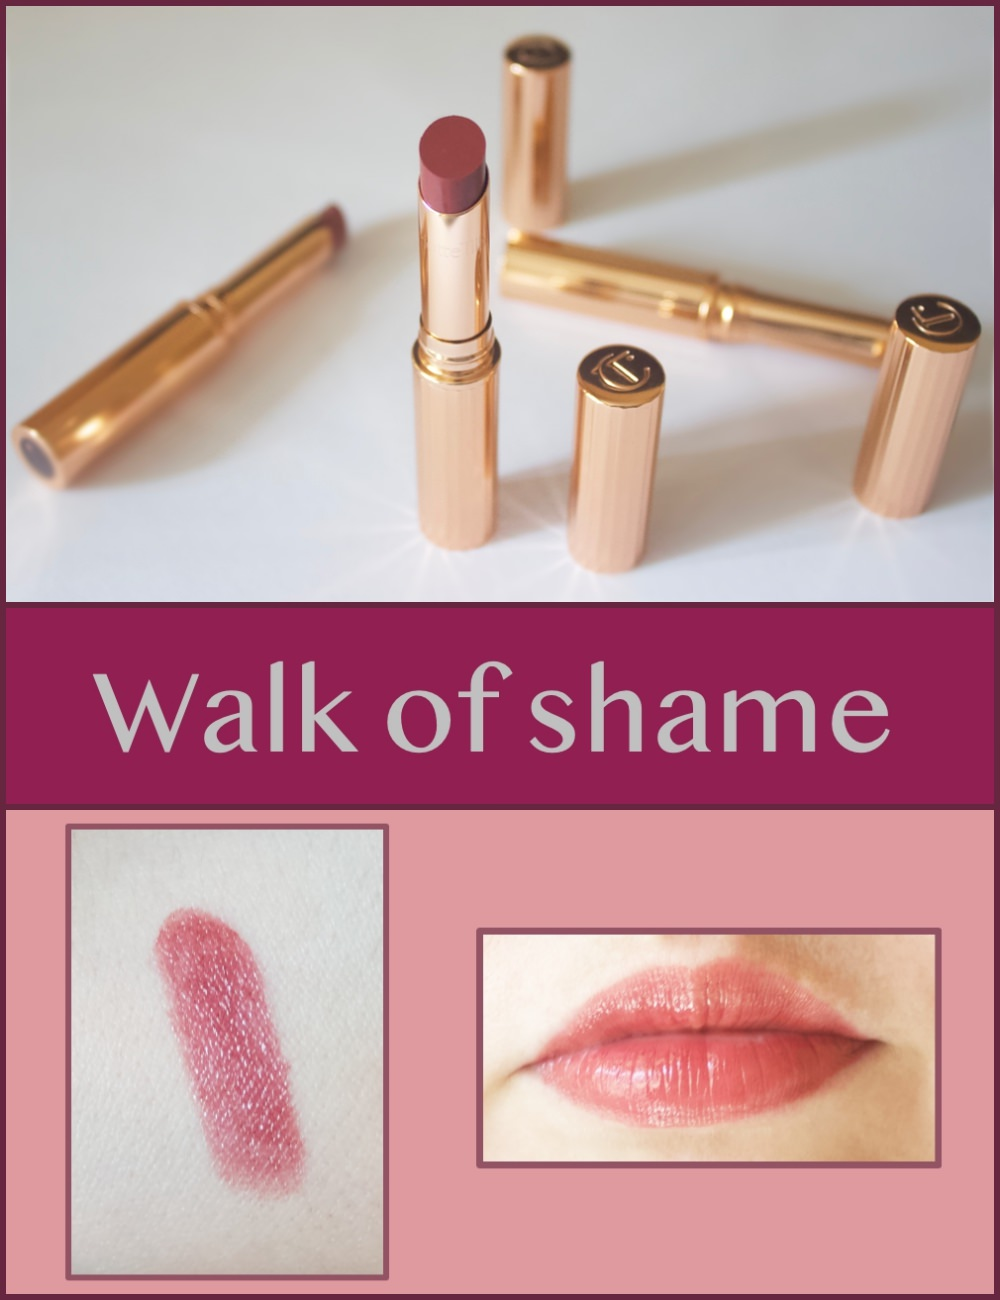 Charlotte Tilbury Superstar lips in Walk of shame swatches